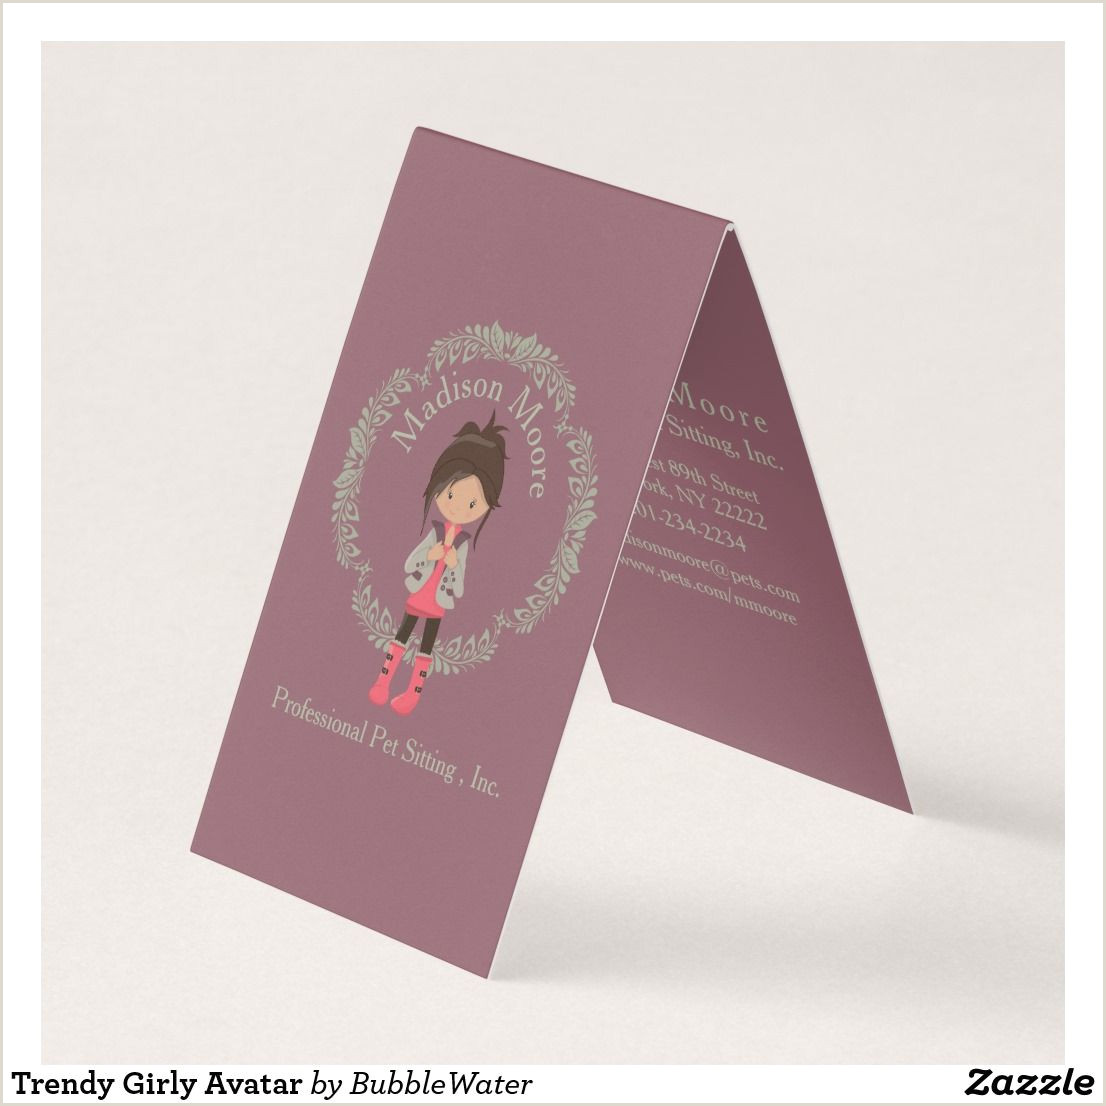 Unique Girly Business Cards Trendy Girly Avatar Business Card